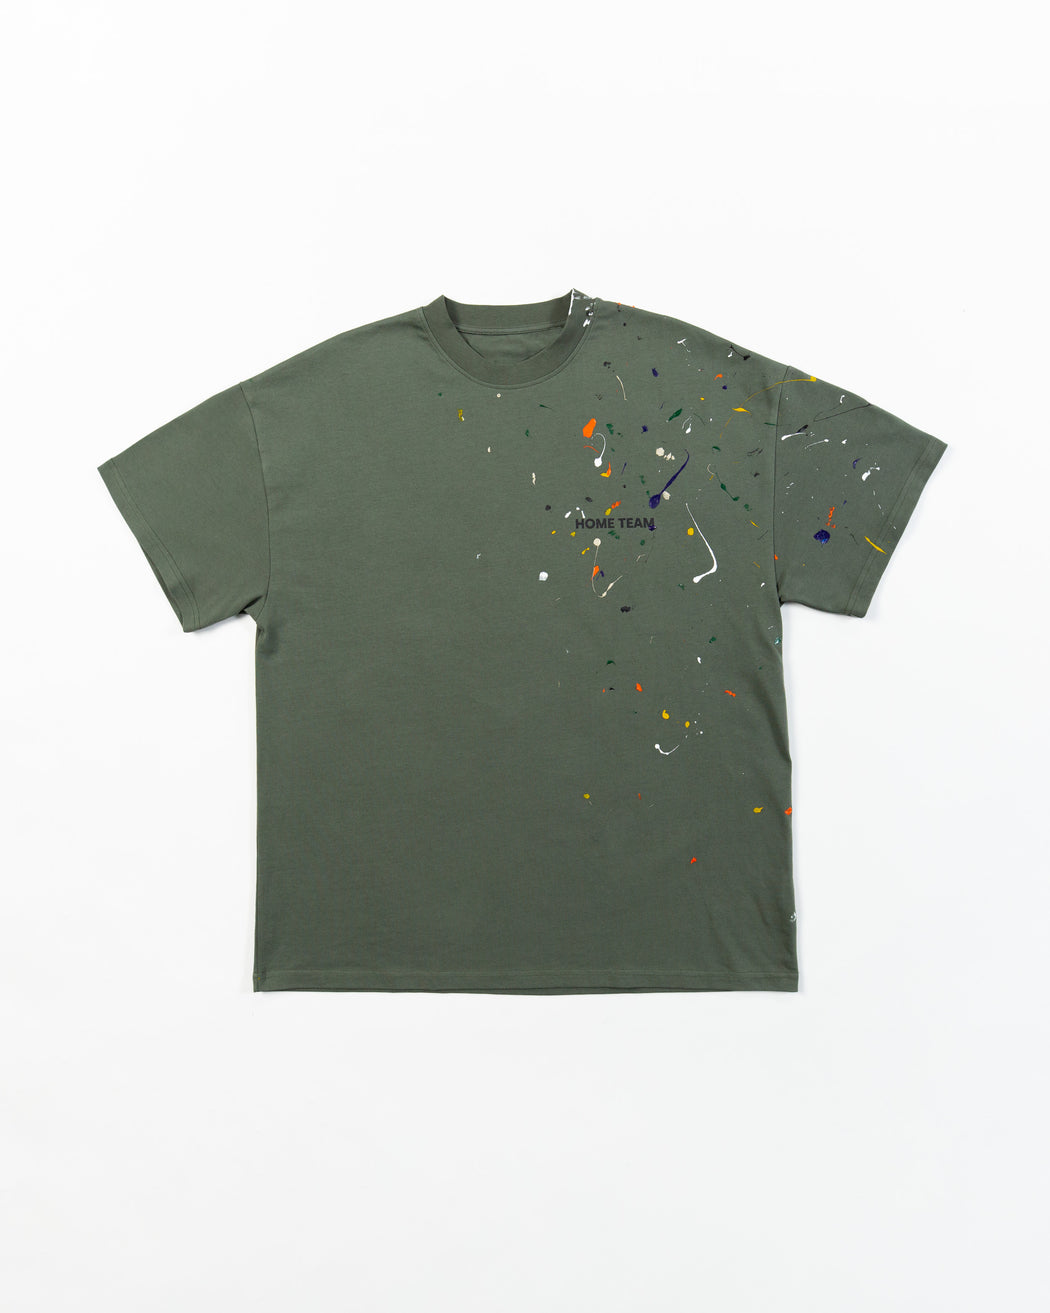 Bundle 03 (The Olive Tee + The Mineral Tee)